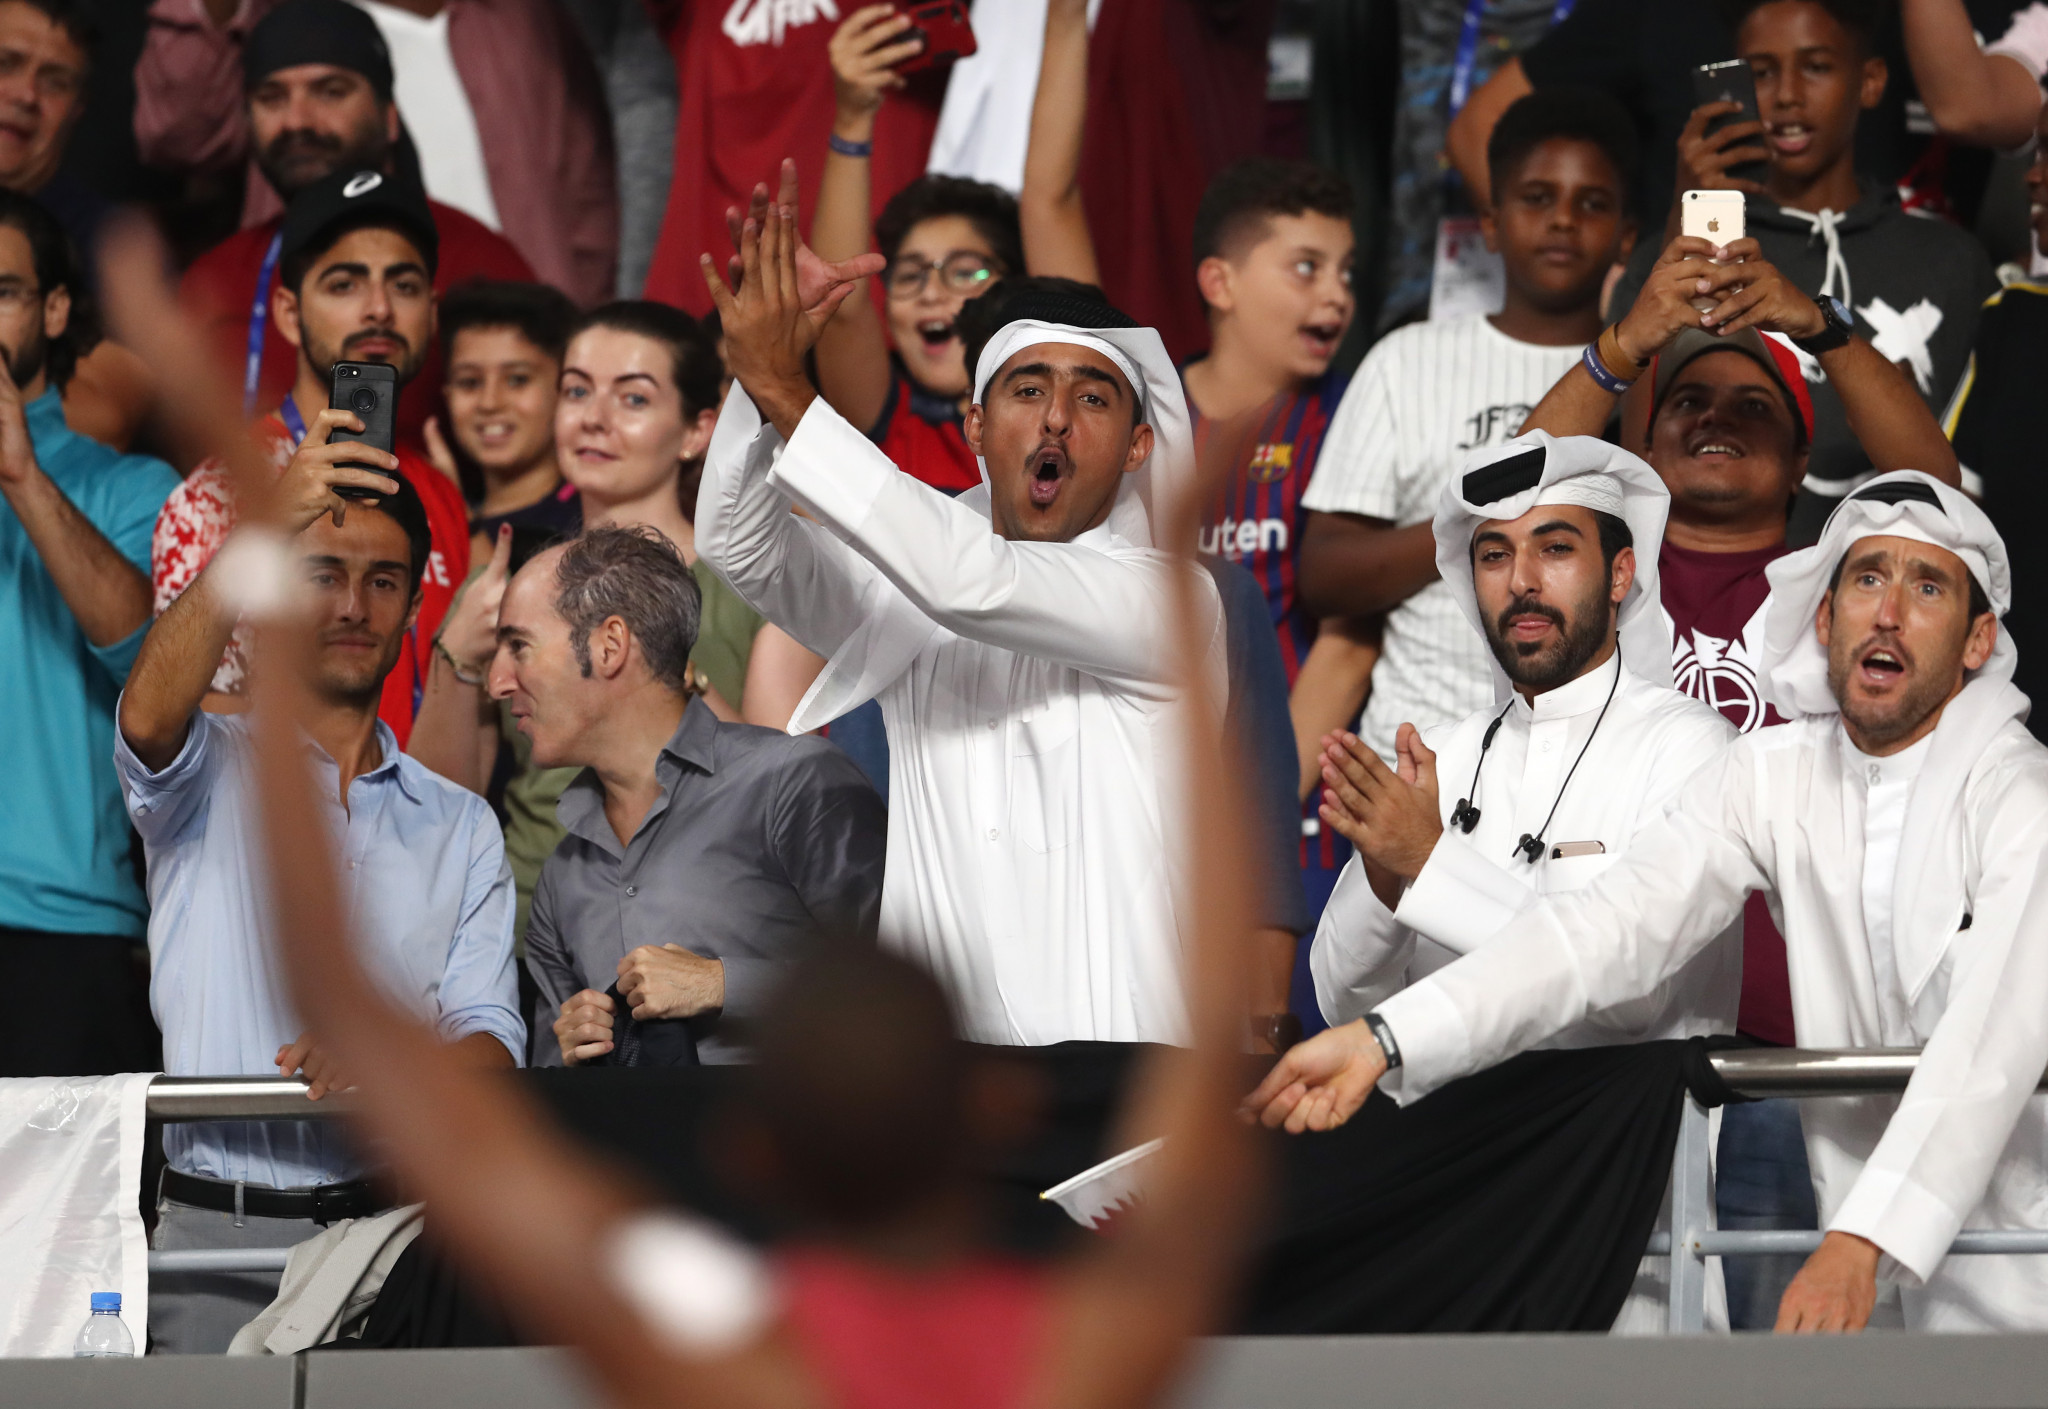 For fans in Doha it was the victory they had been hoping for - expecting even ©Getty Images